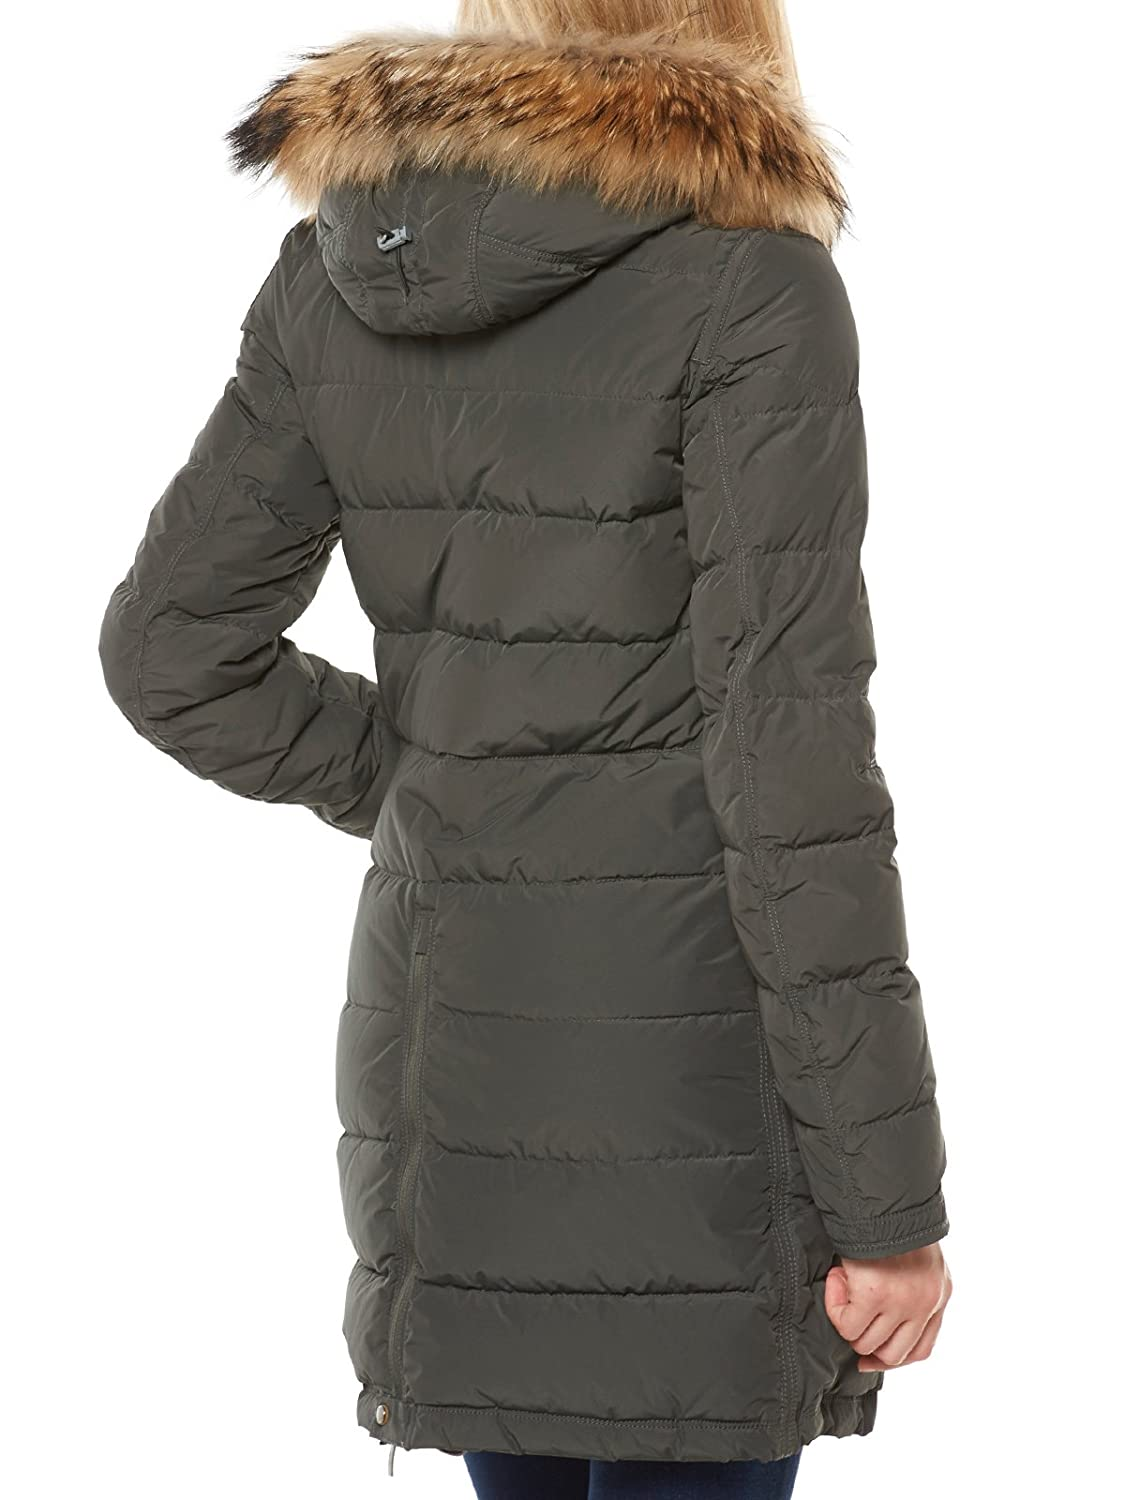 Parajumpers Damen Daunen Kurzmantel LIGHT LONG BEAR olive Gr. L: Amazon.fr: Vêtements et accessoires